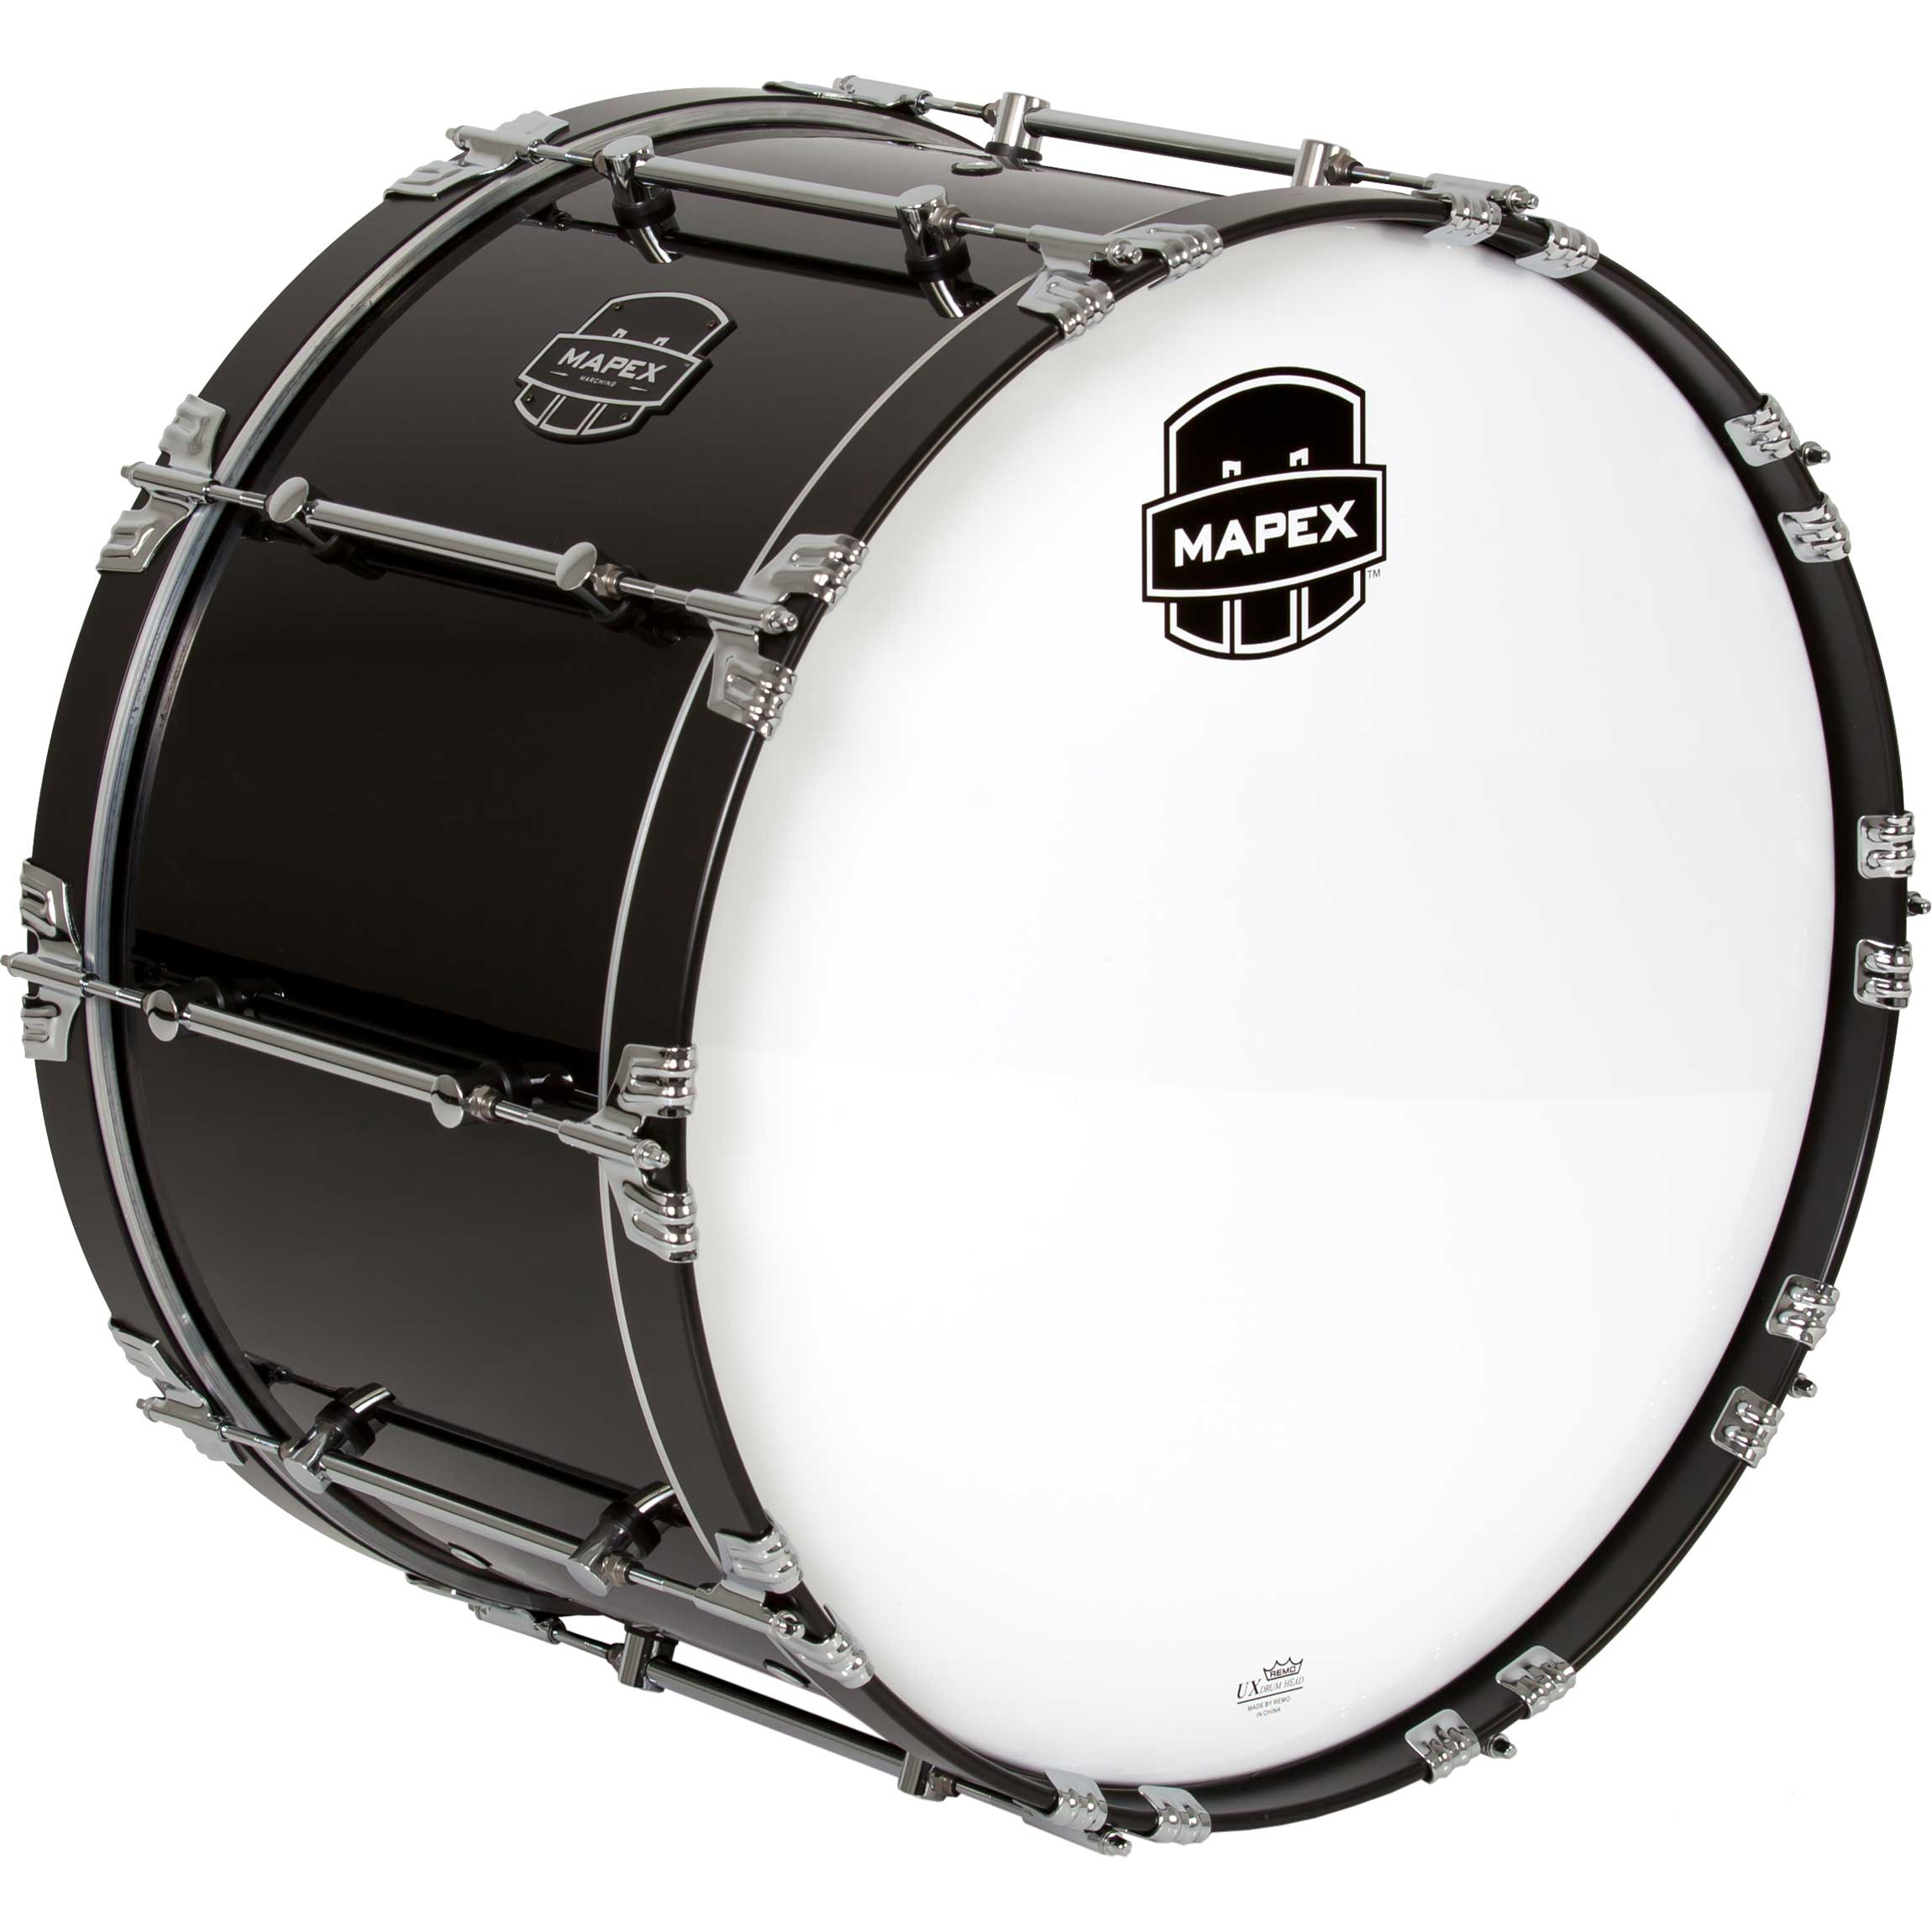 "Mapex 24"" Quantum Marching Bass Drum in Gloss Black"